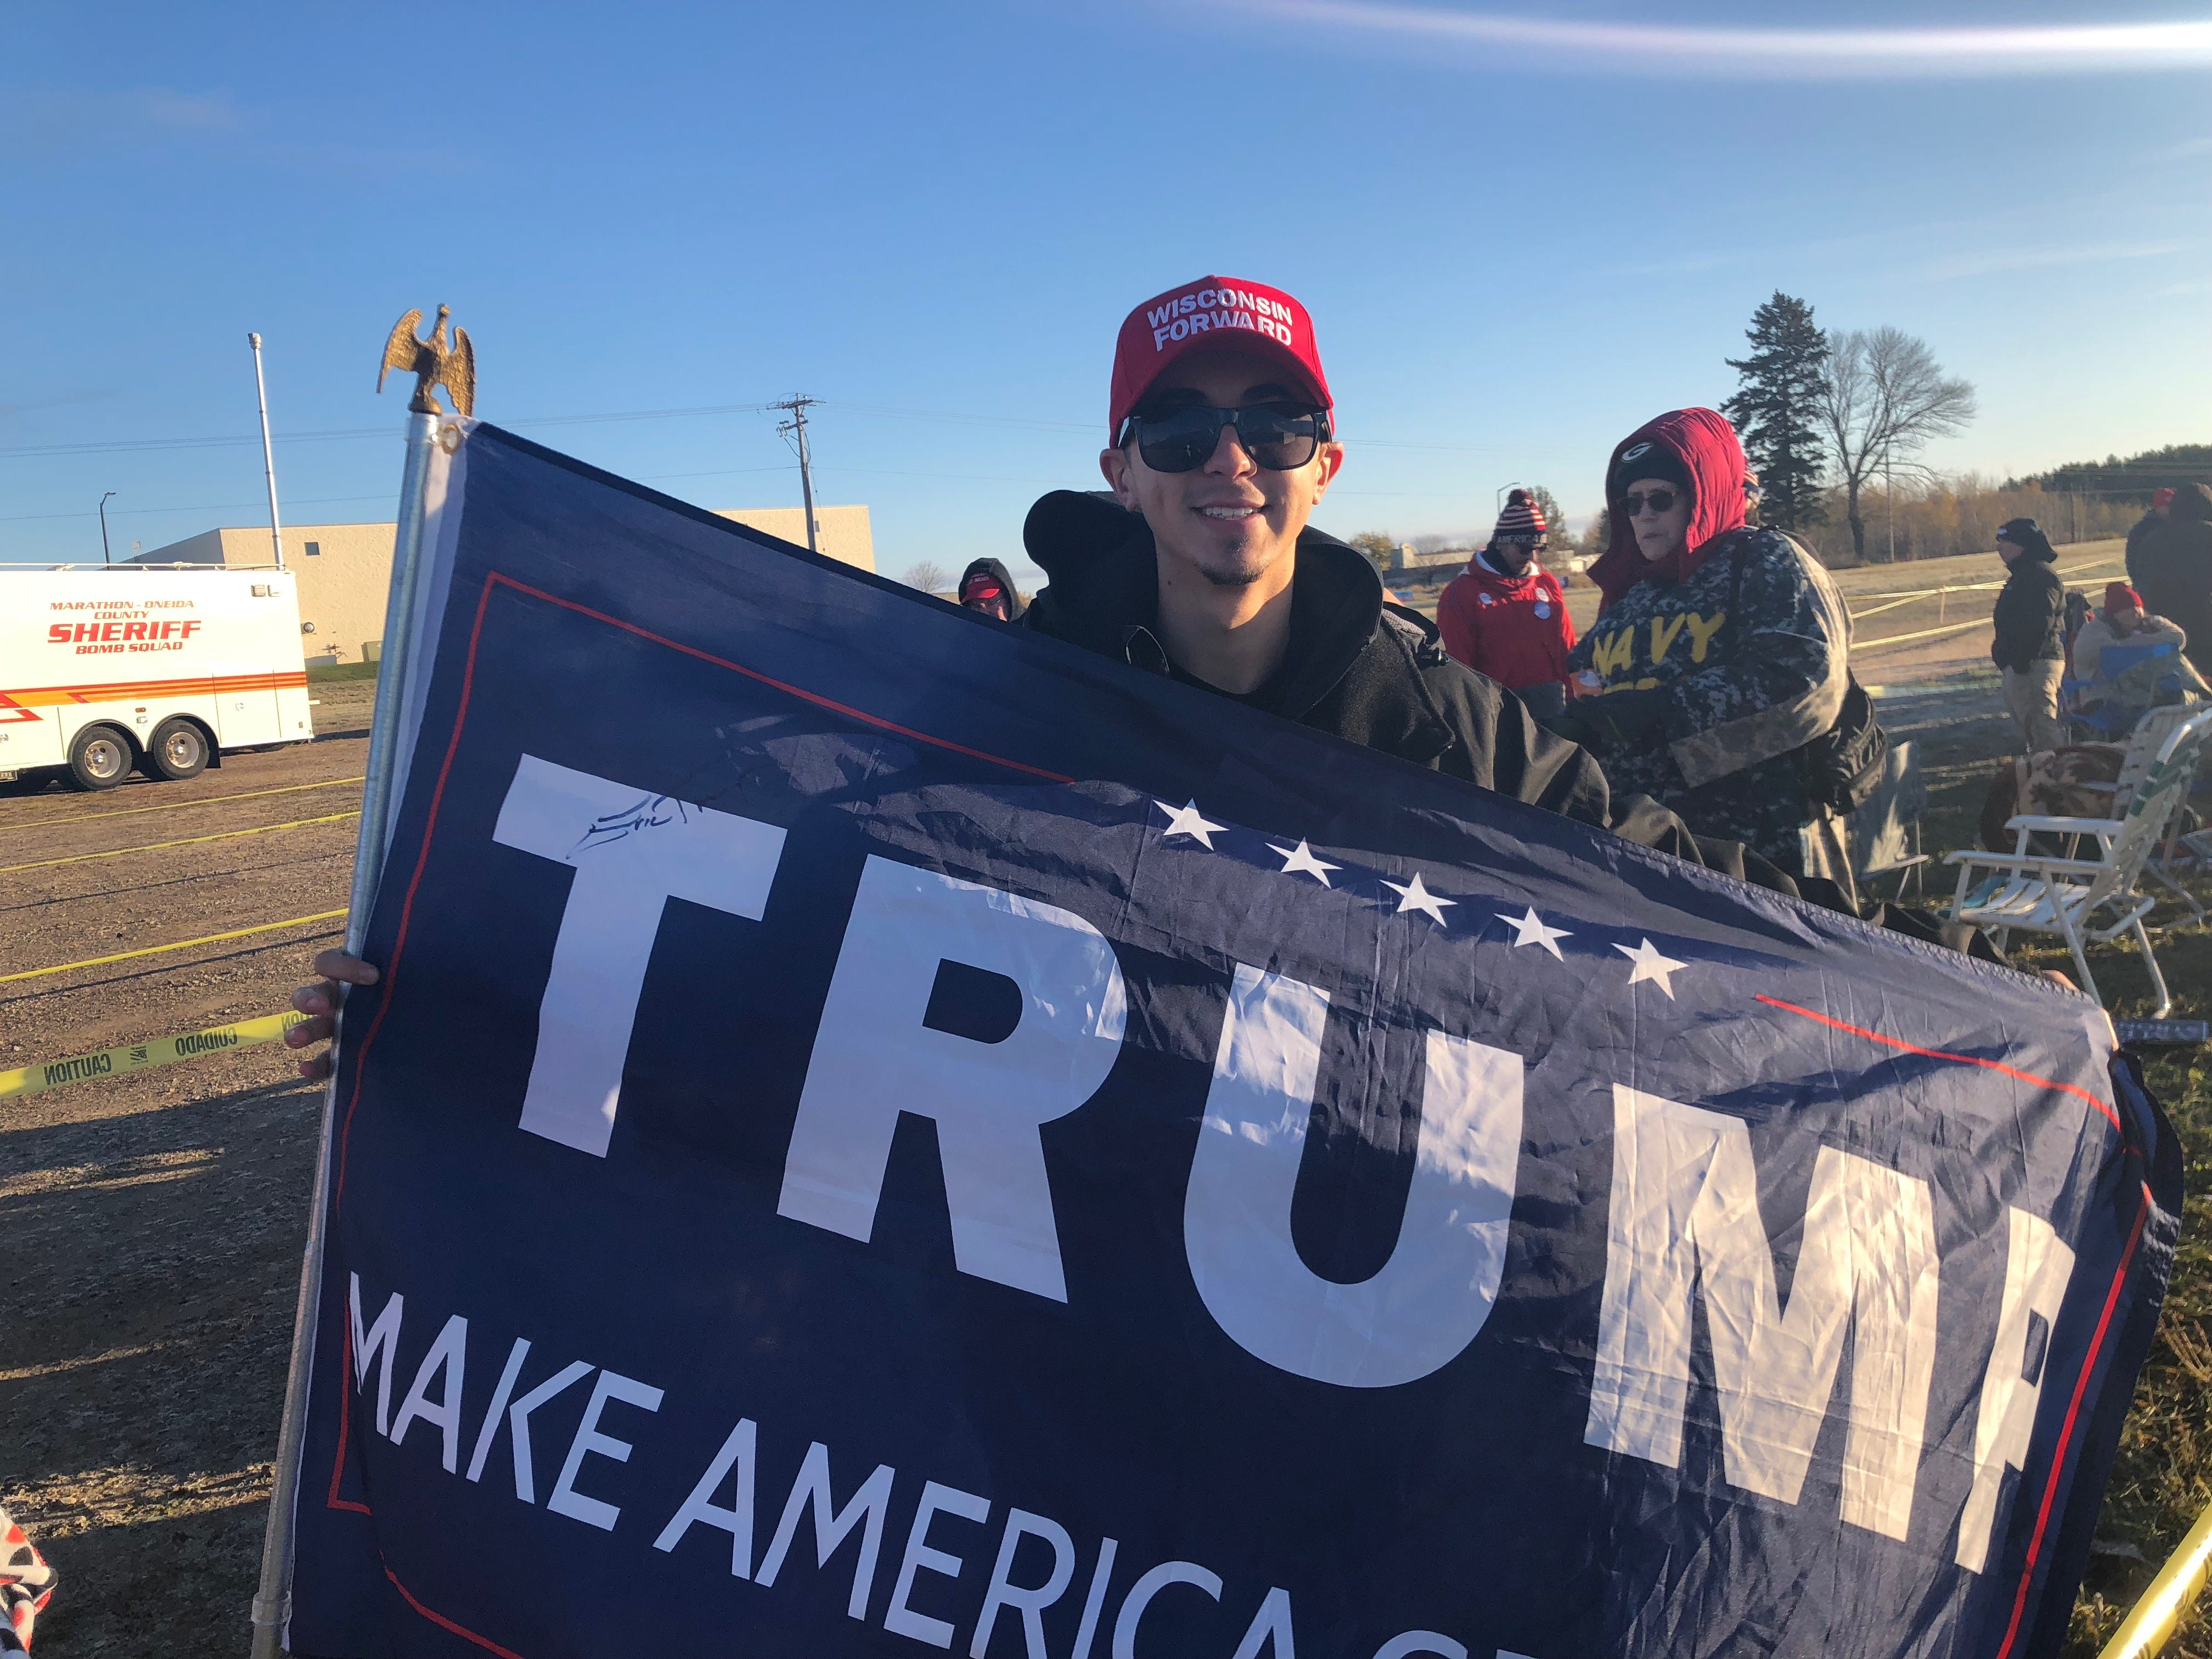 Chaz Fuller proudly displays a Trump flag, signed by the president's son, Eric Trump.